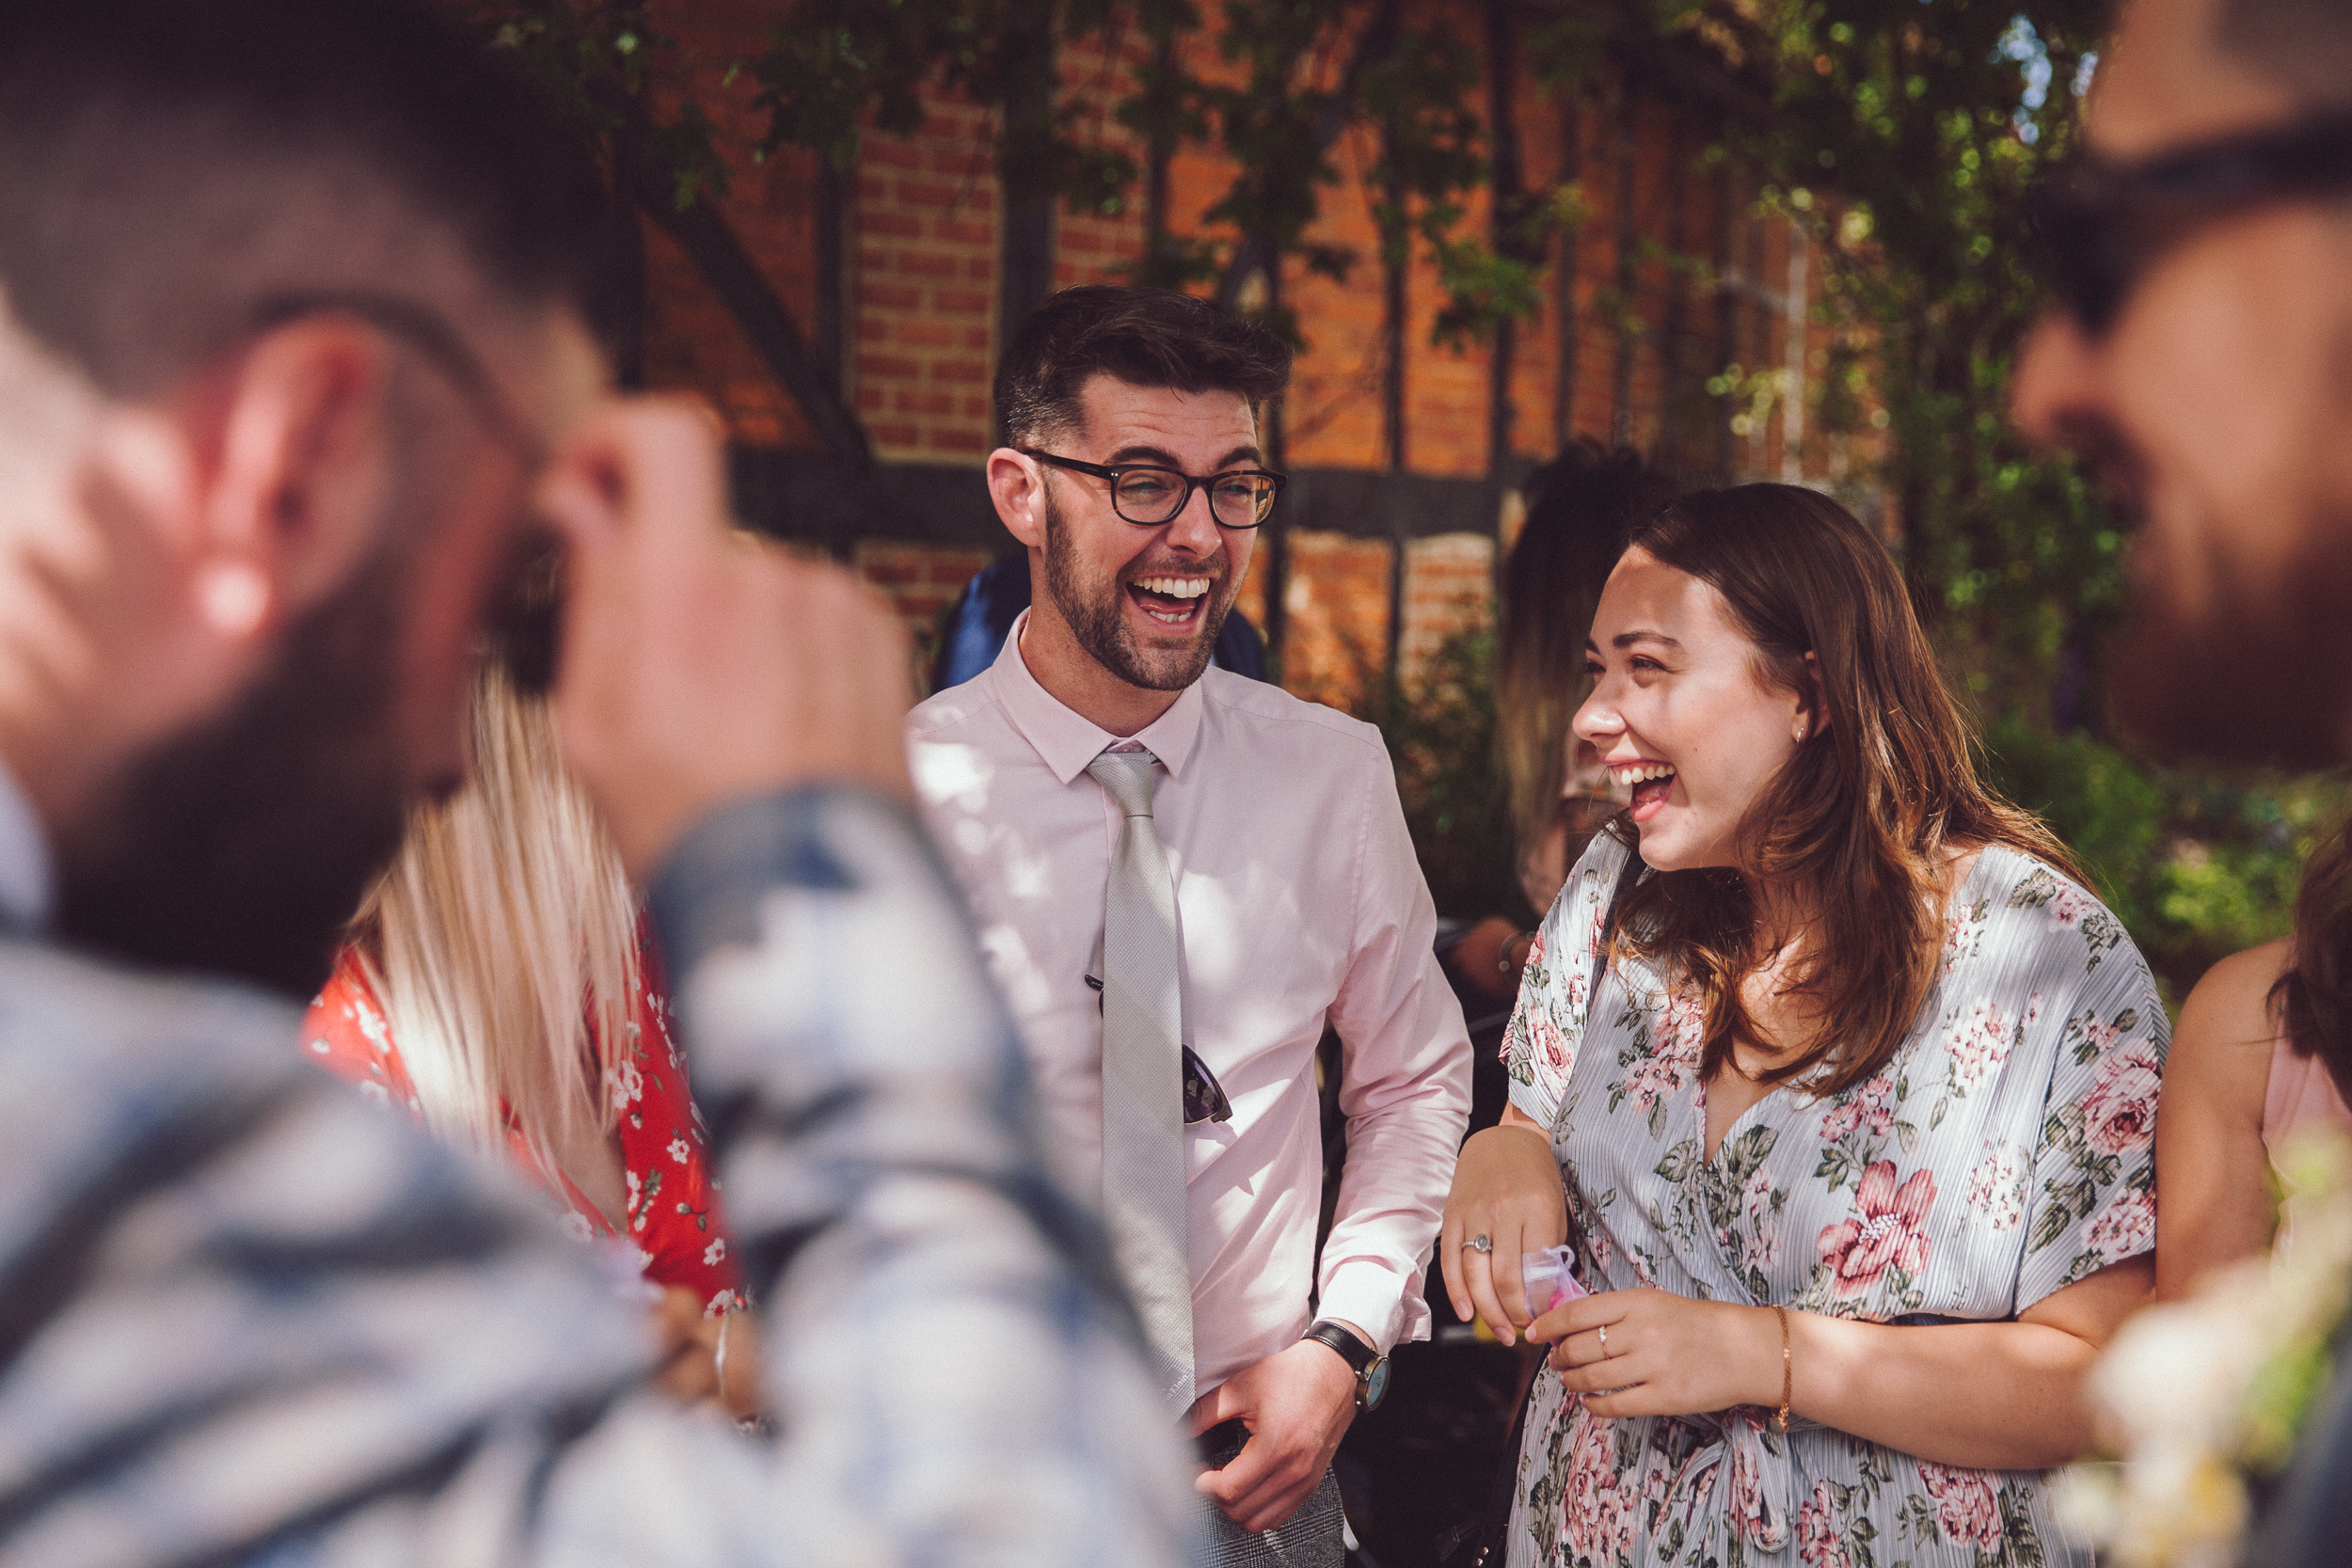 Guest enjoying themselves at the barns hotel Bedfordshire, Wedding photographer Richard Puncheon on hand capturing moments.